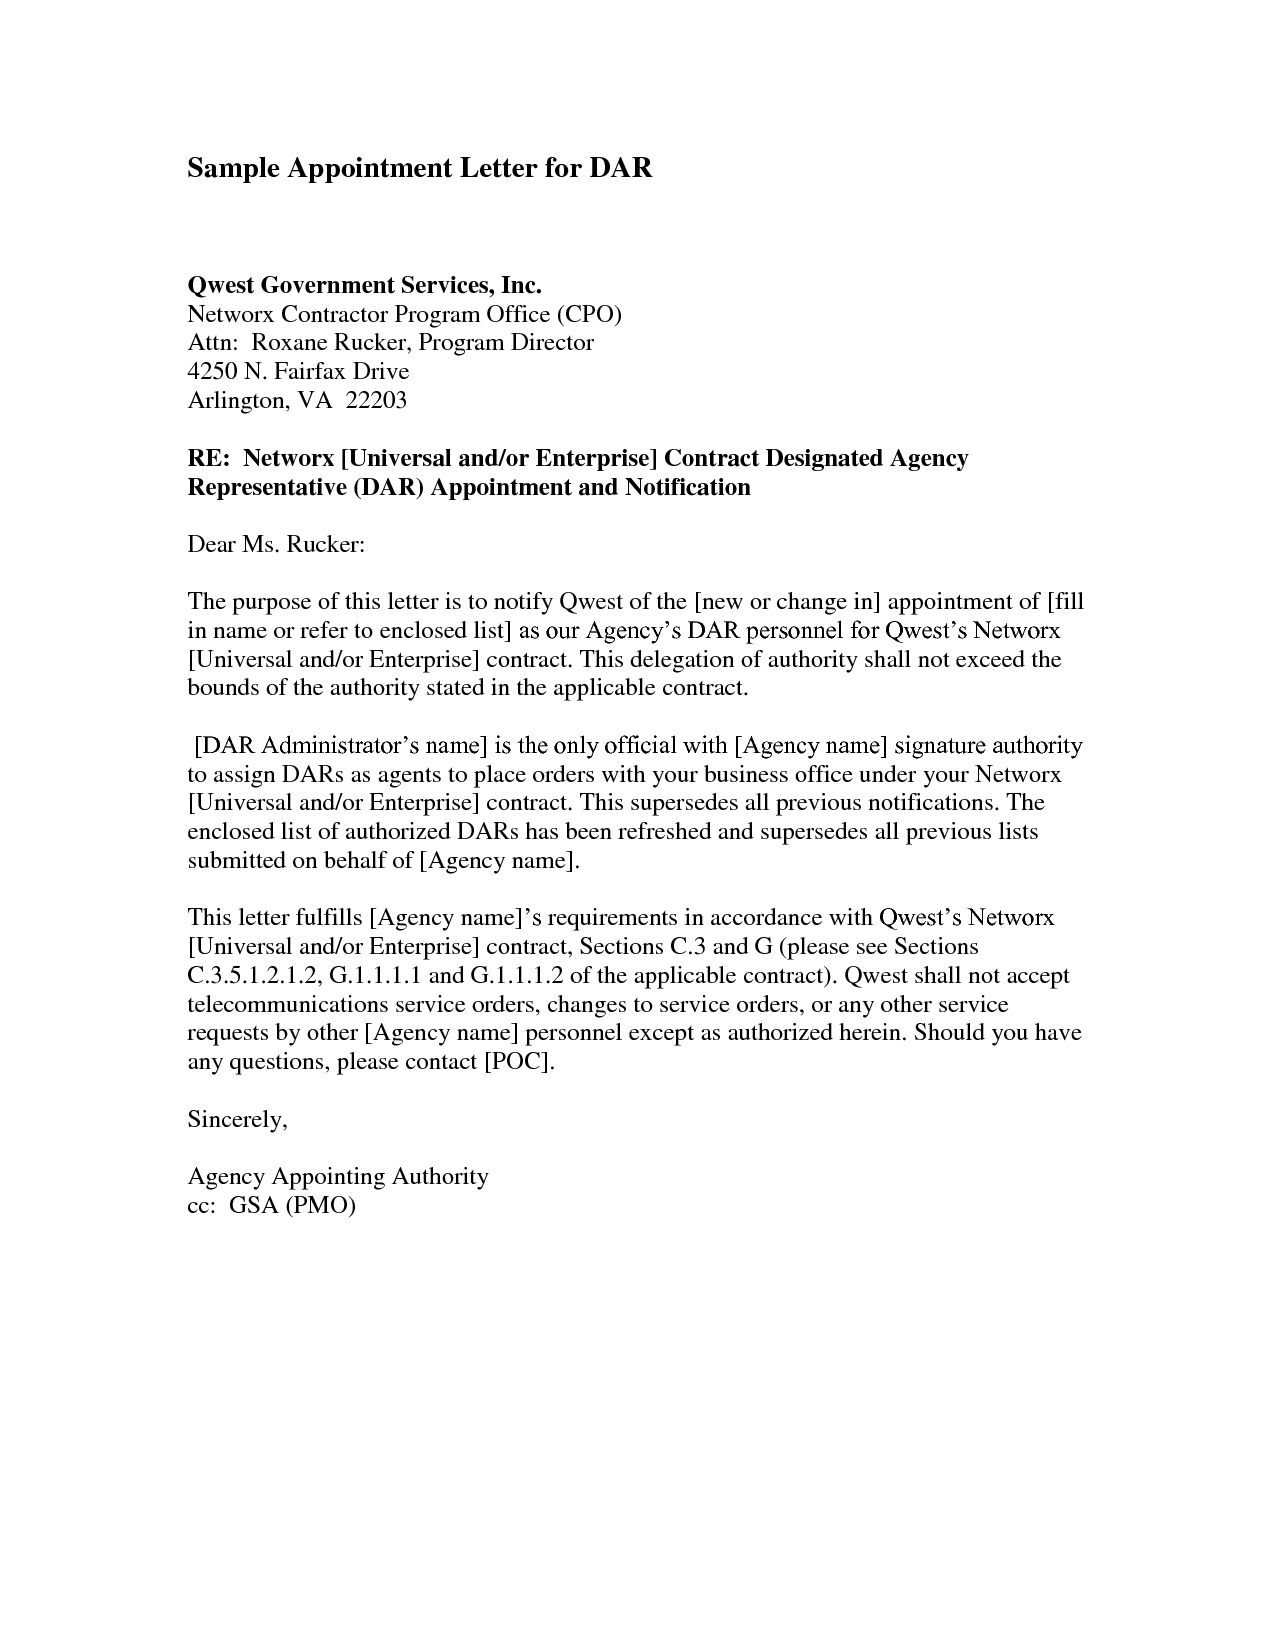 Credit Agency Dispute Letter Template - Trustee Appointment Letter Director Trustee is Appointed or